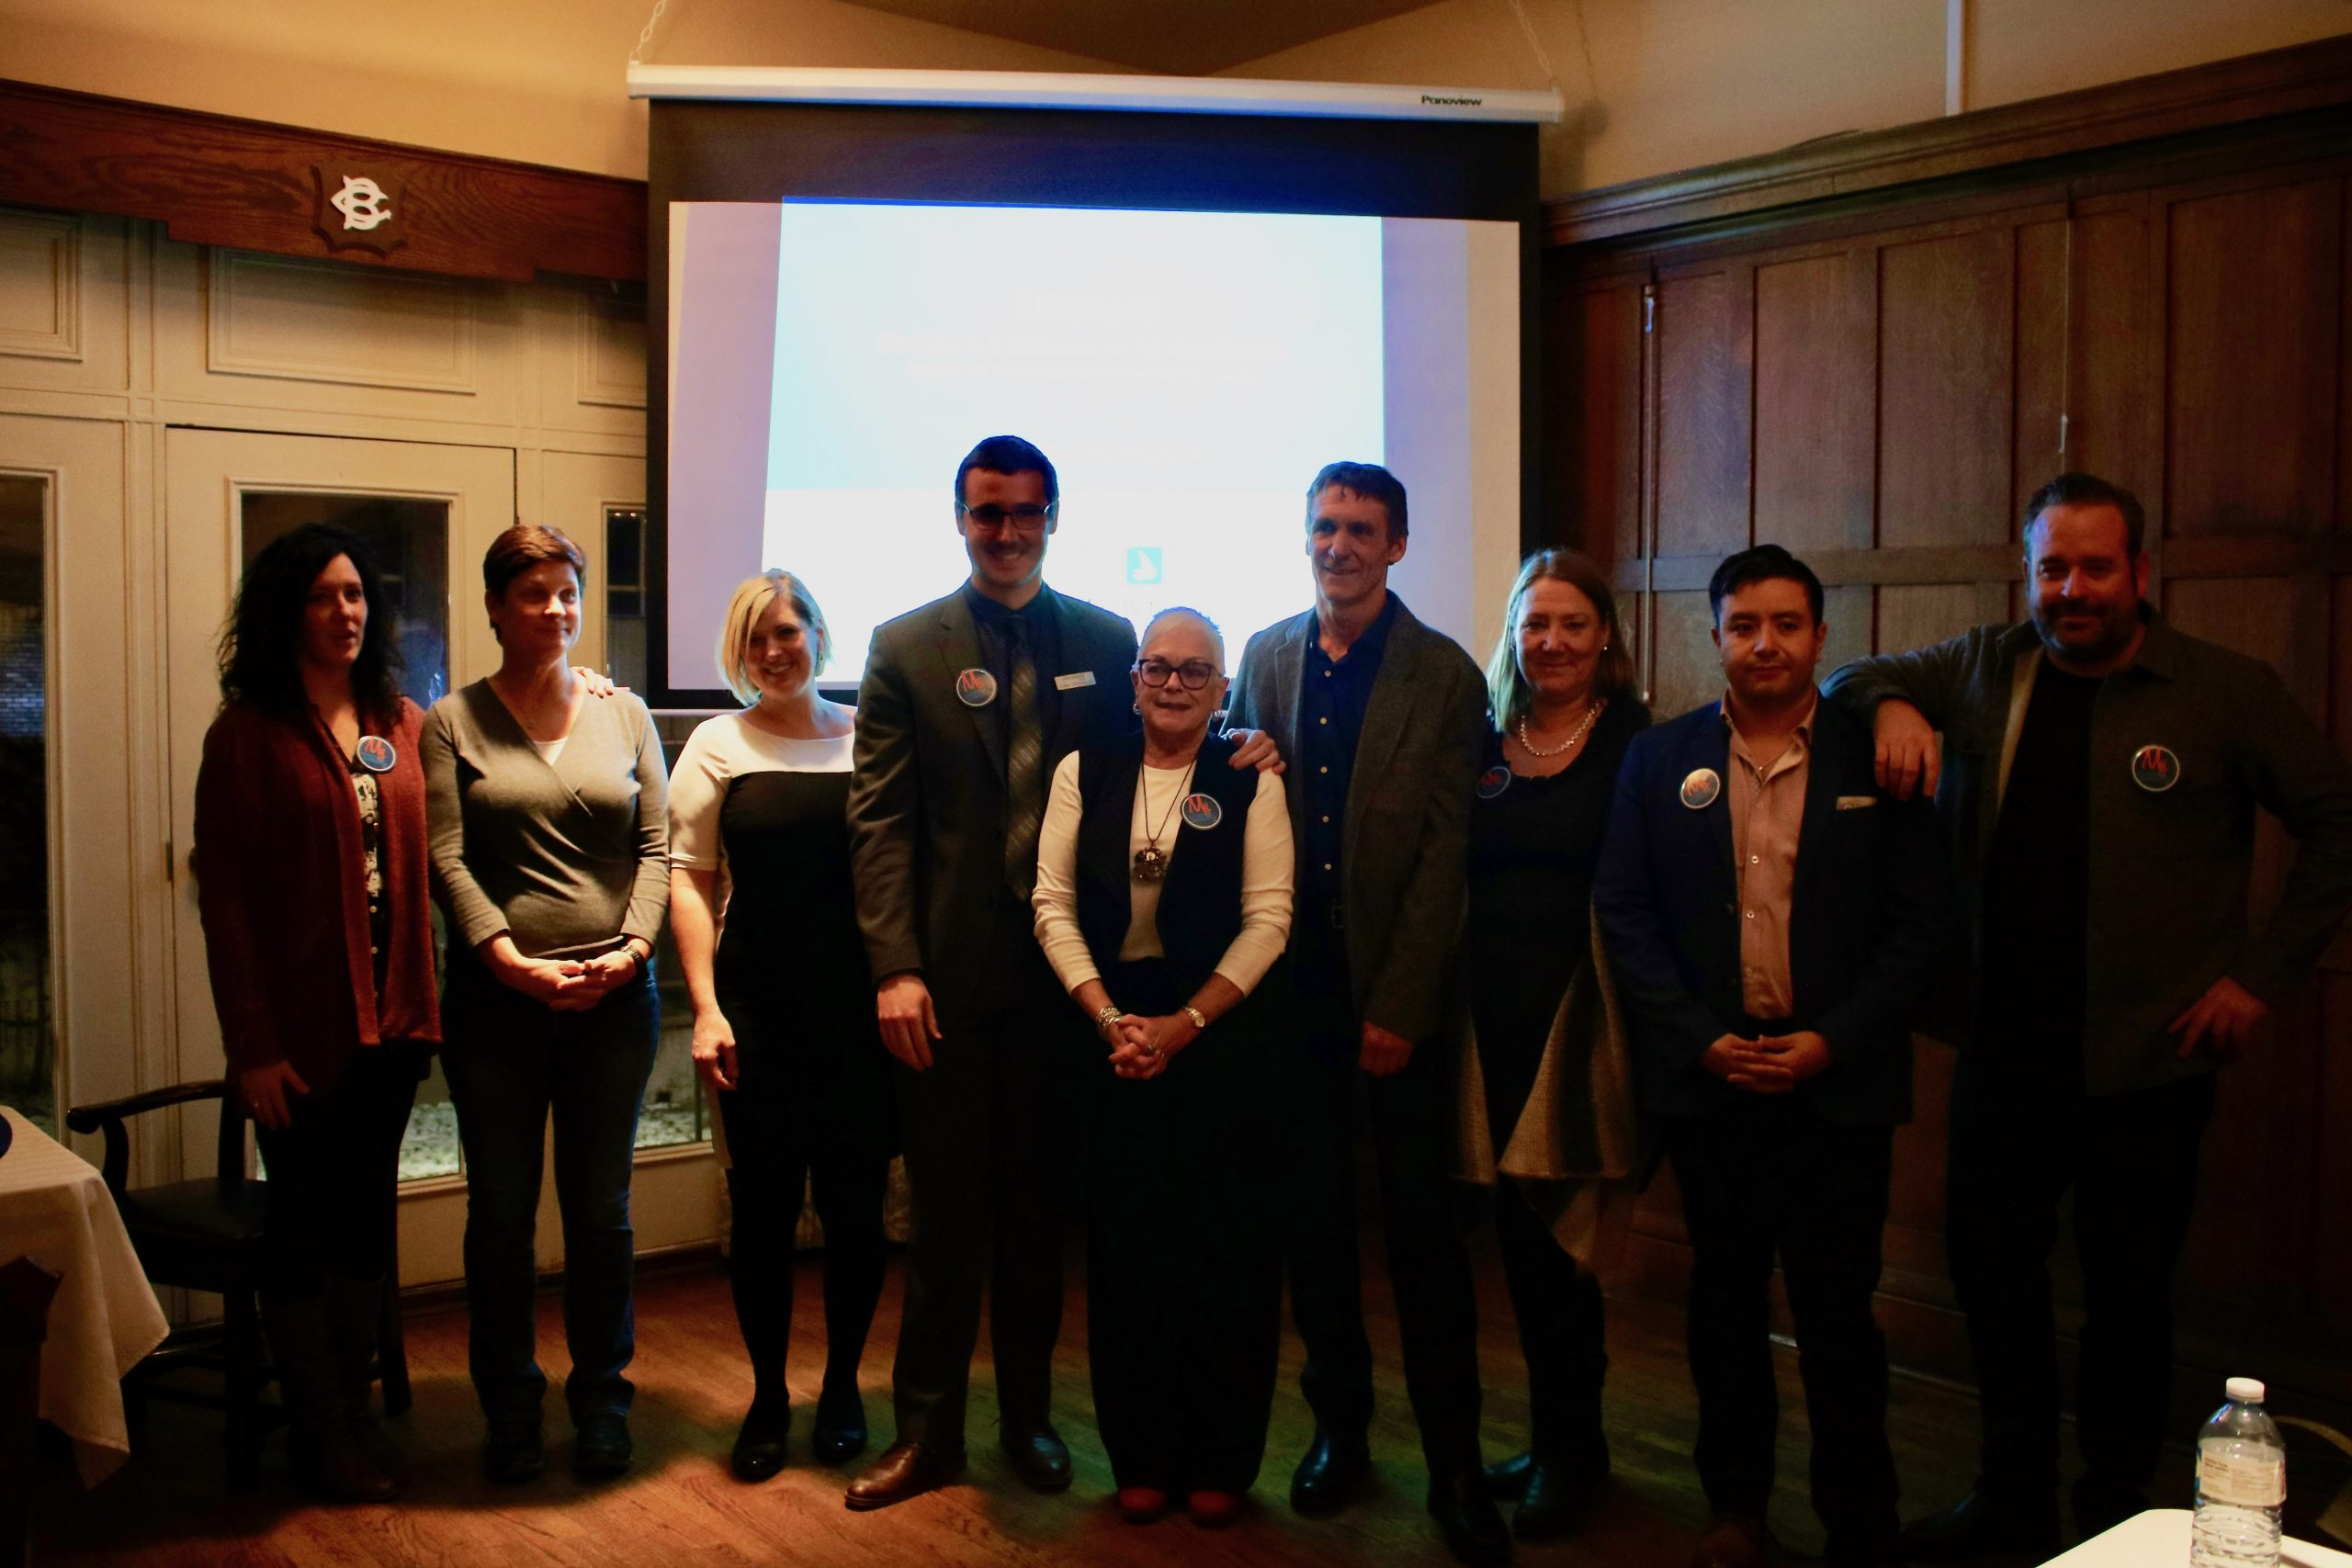 Belleville BDIA selects new board members at AGM